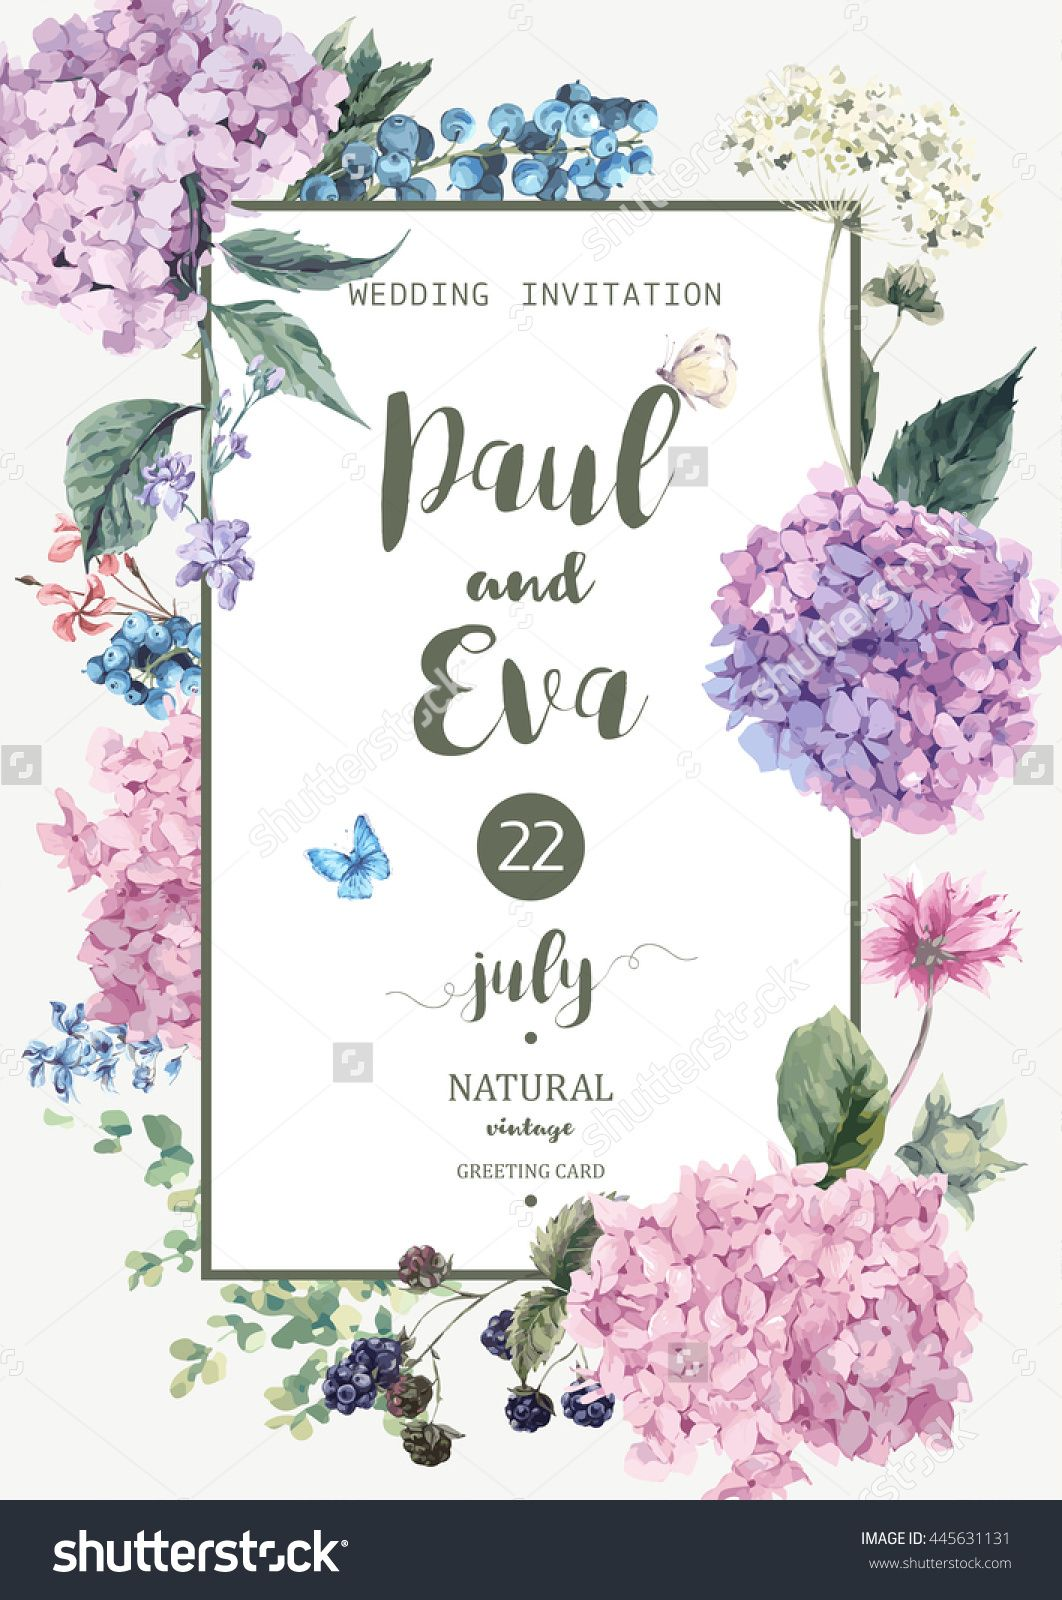 vintage floral wedding invitation with blooming hydrangea and garden